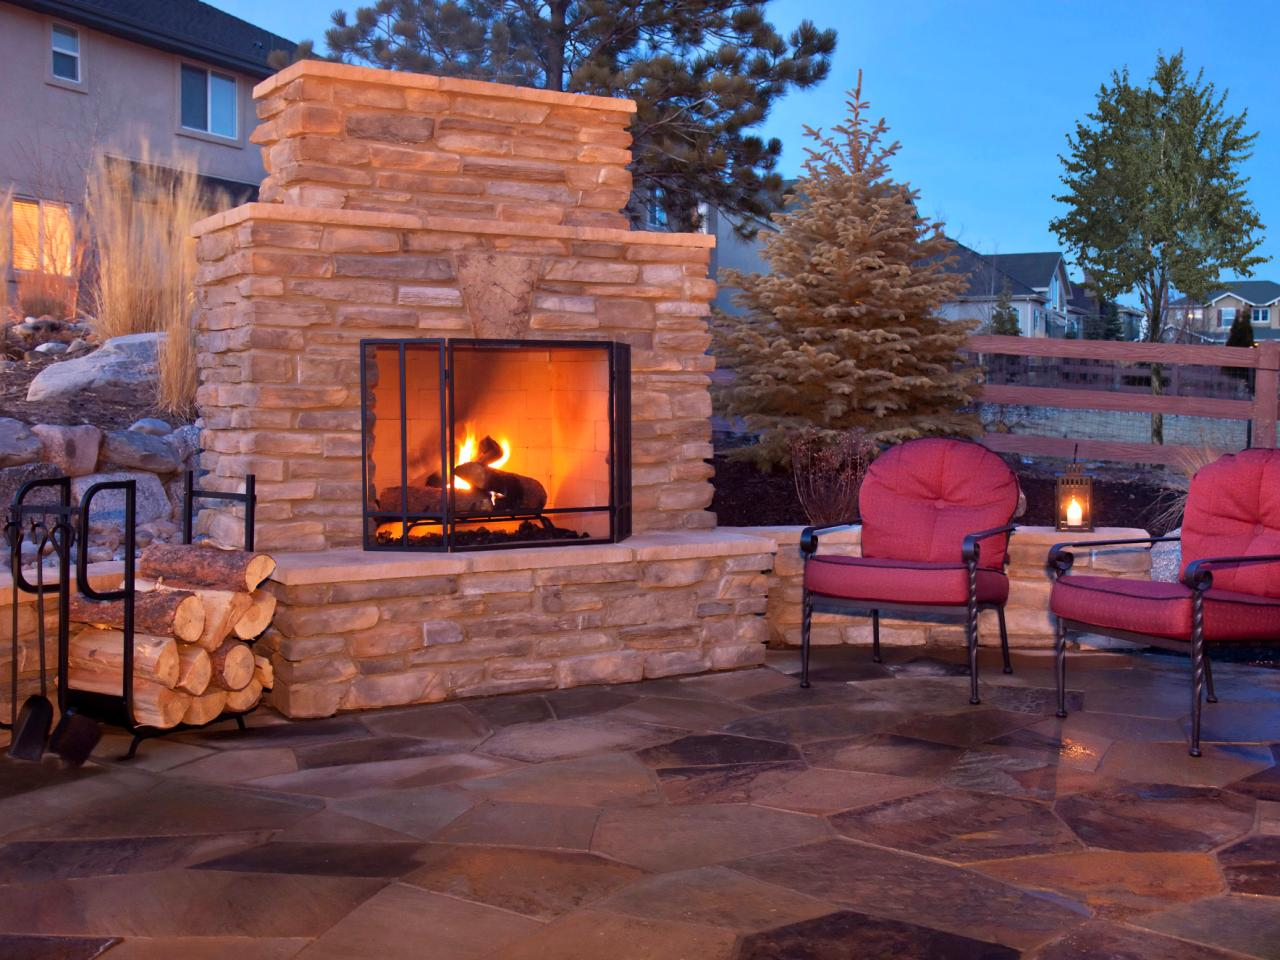 Investigate how to plan for building an outdoor fireplace